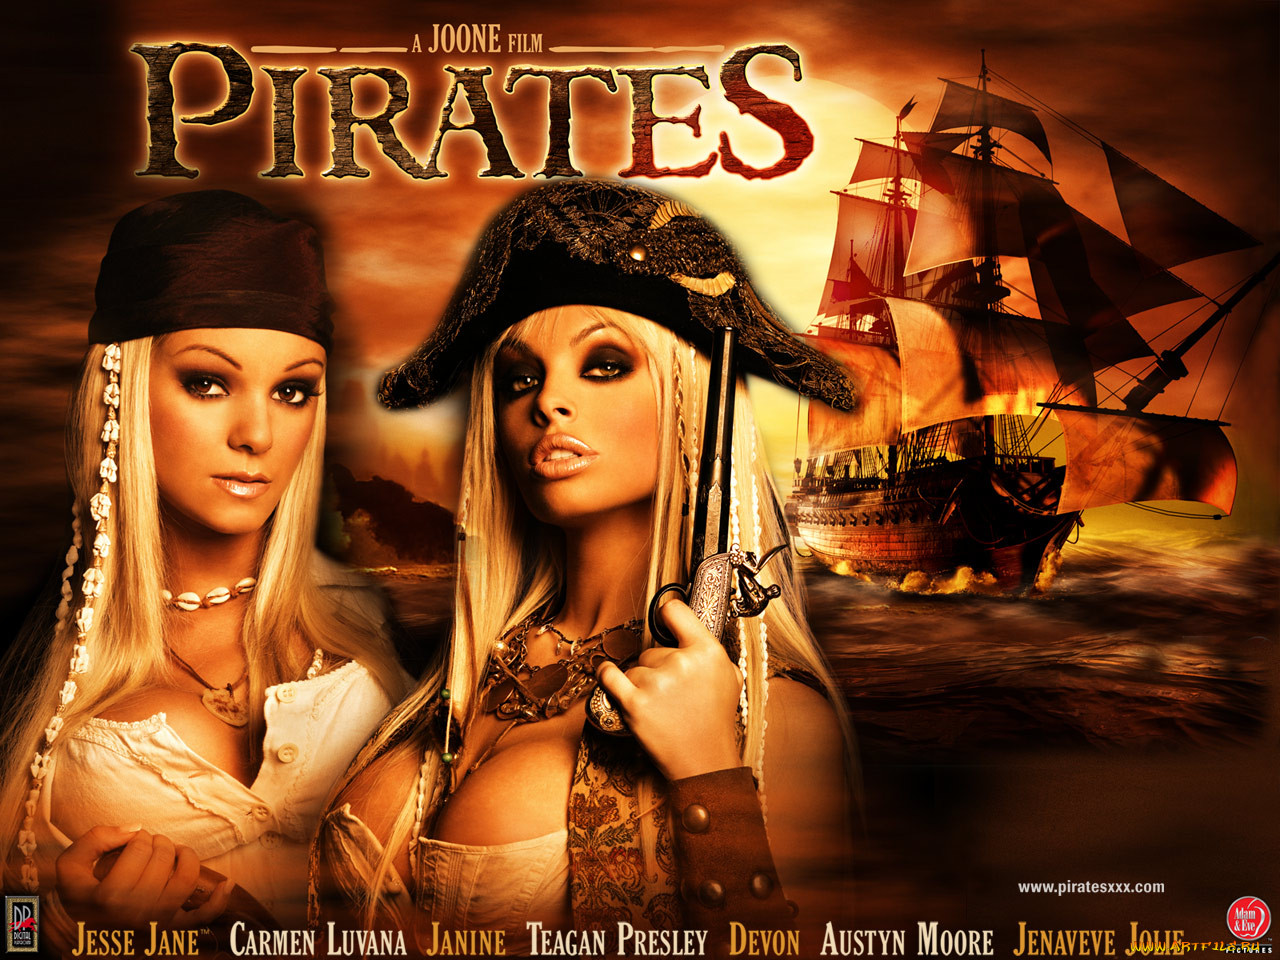 Pirates 2 adult movie sexy chicks